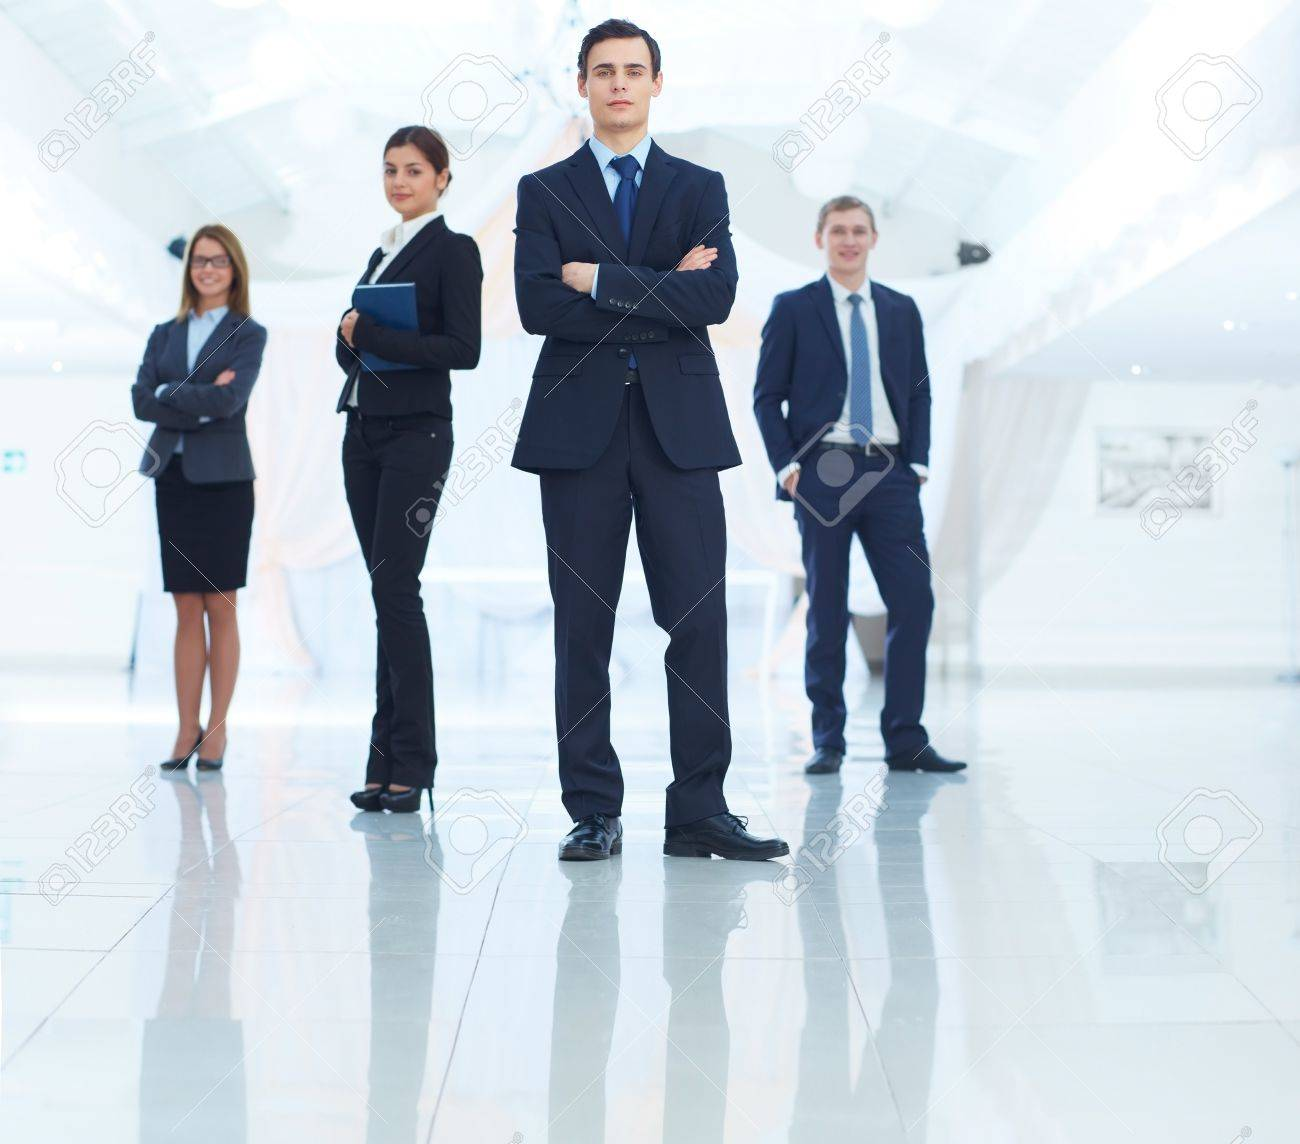 Portrait of young businessman looking at camera with elegant partners on background Stock Photo - 16848850